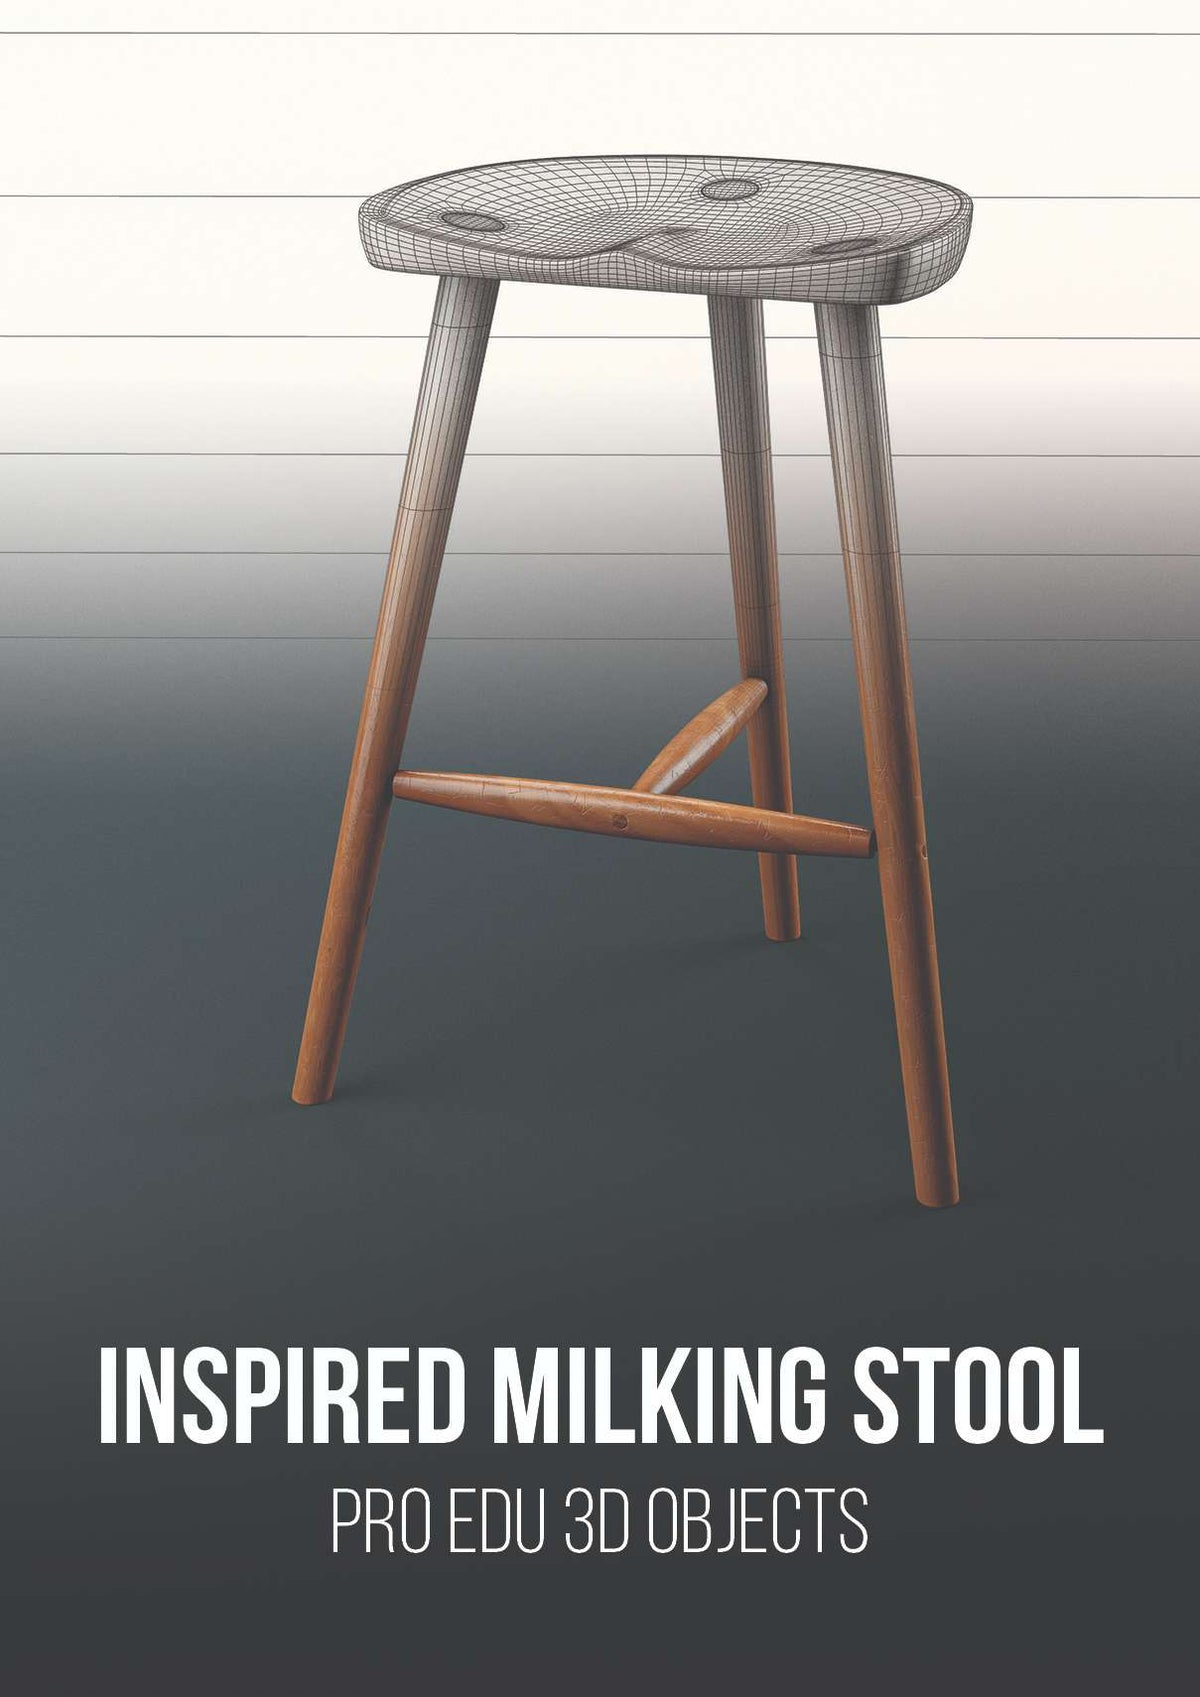 Inspired Milking Stool 3D Model